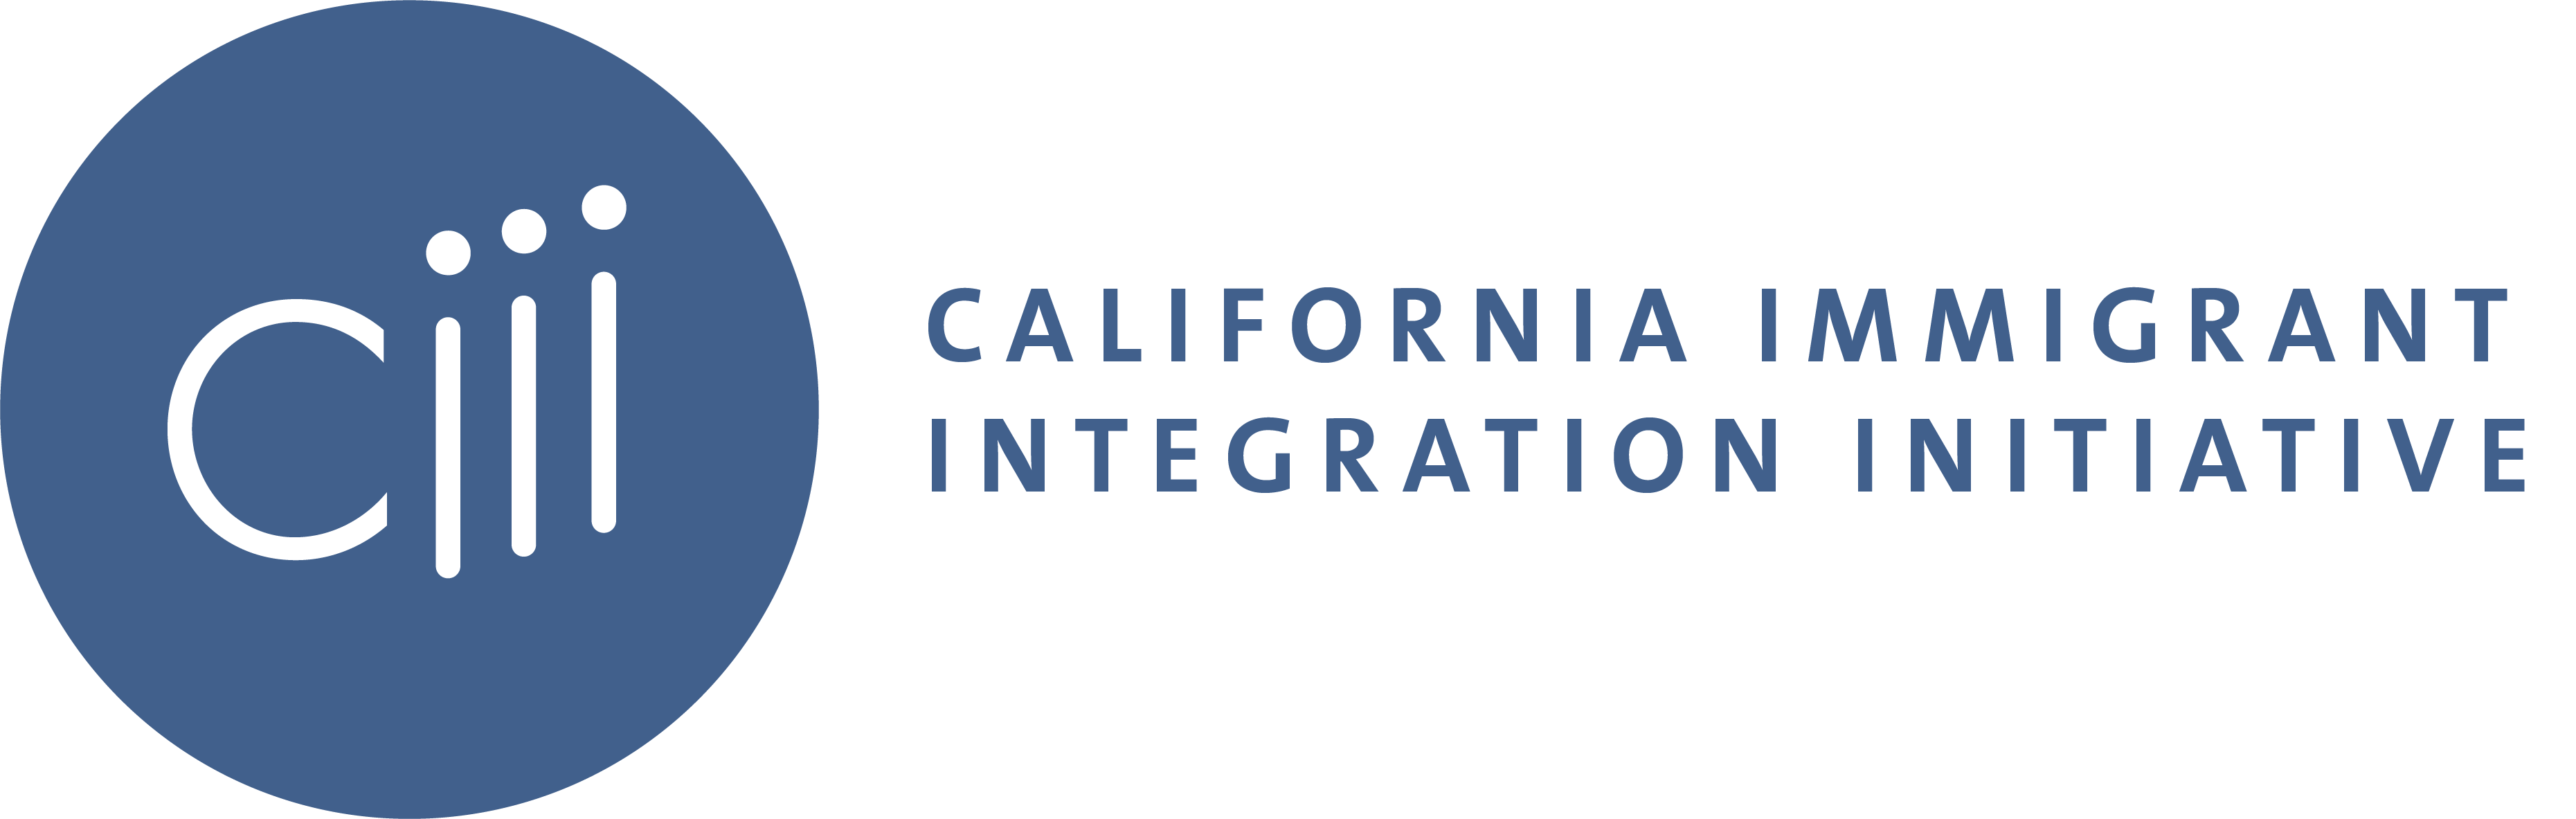 California Immigrant Integration Initiative Quarter III Meeting